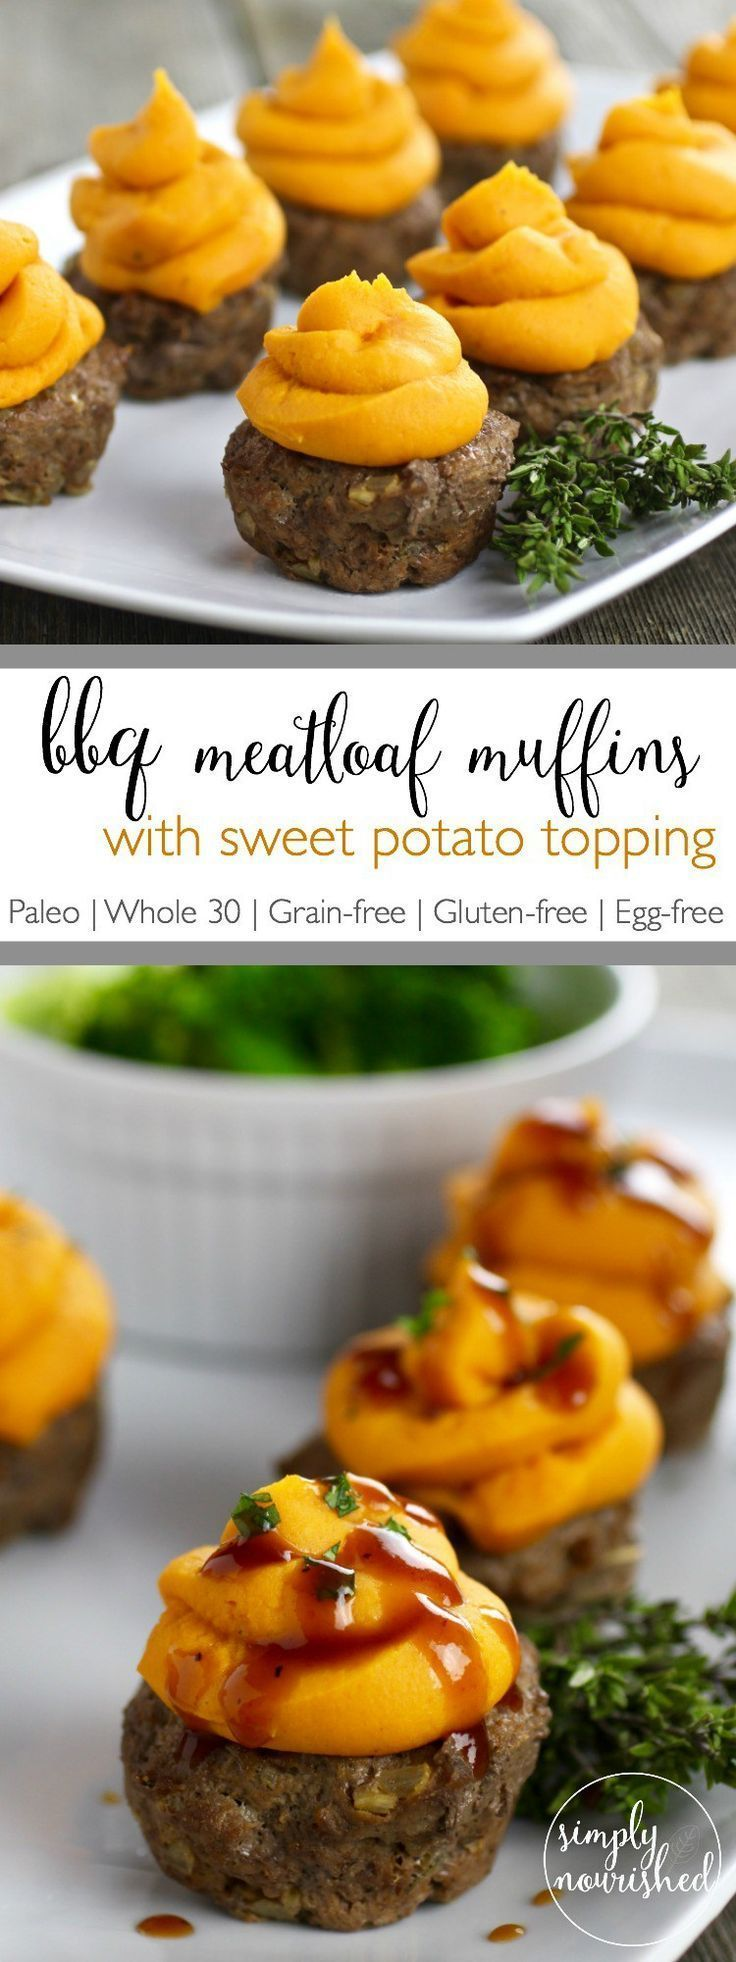 BBQ Meatloaf Muffins with Sweet Potato Topping |Paleo | Whole 30 | Egg-free |